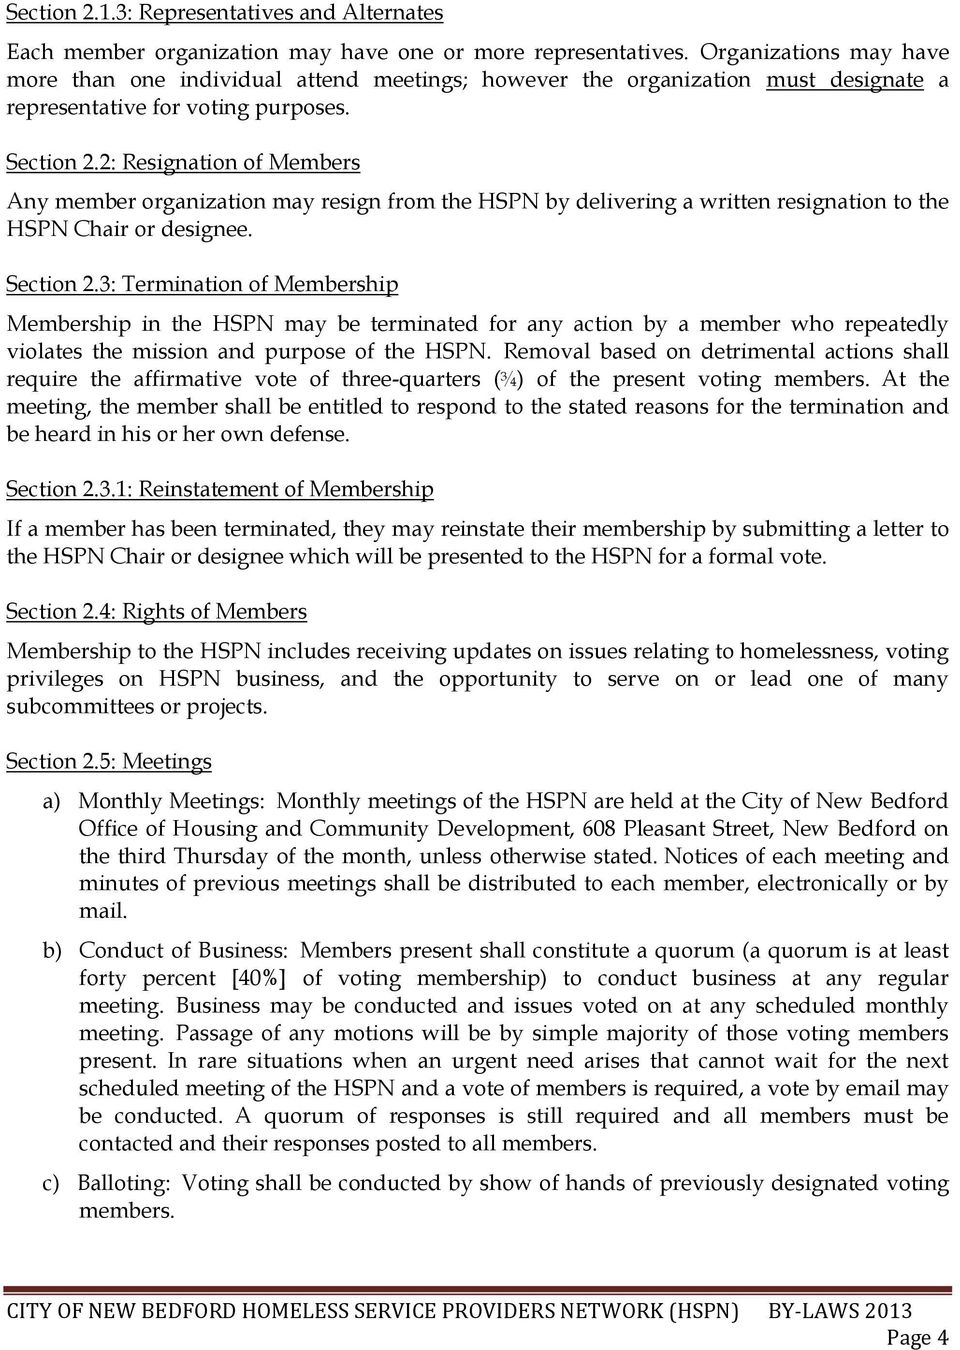 2: Resignation of Members Any member organization may resign from the HSPN by delivering a written resignation to the HSPN Chair or designee. Section 2.